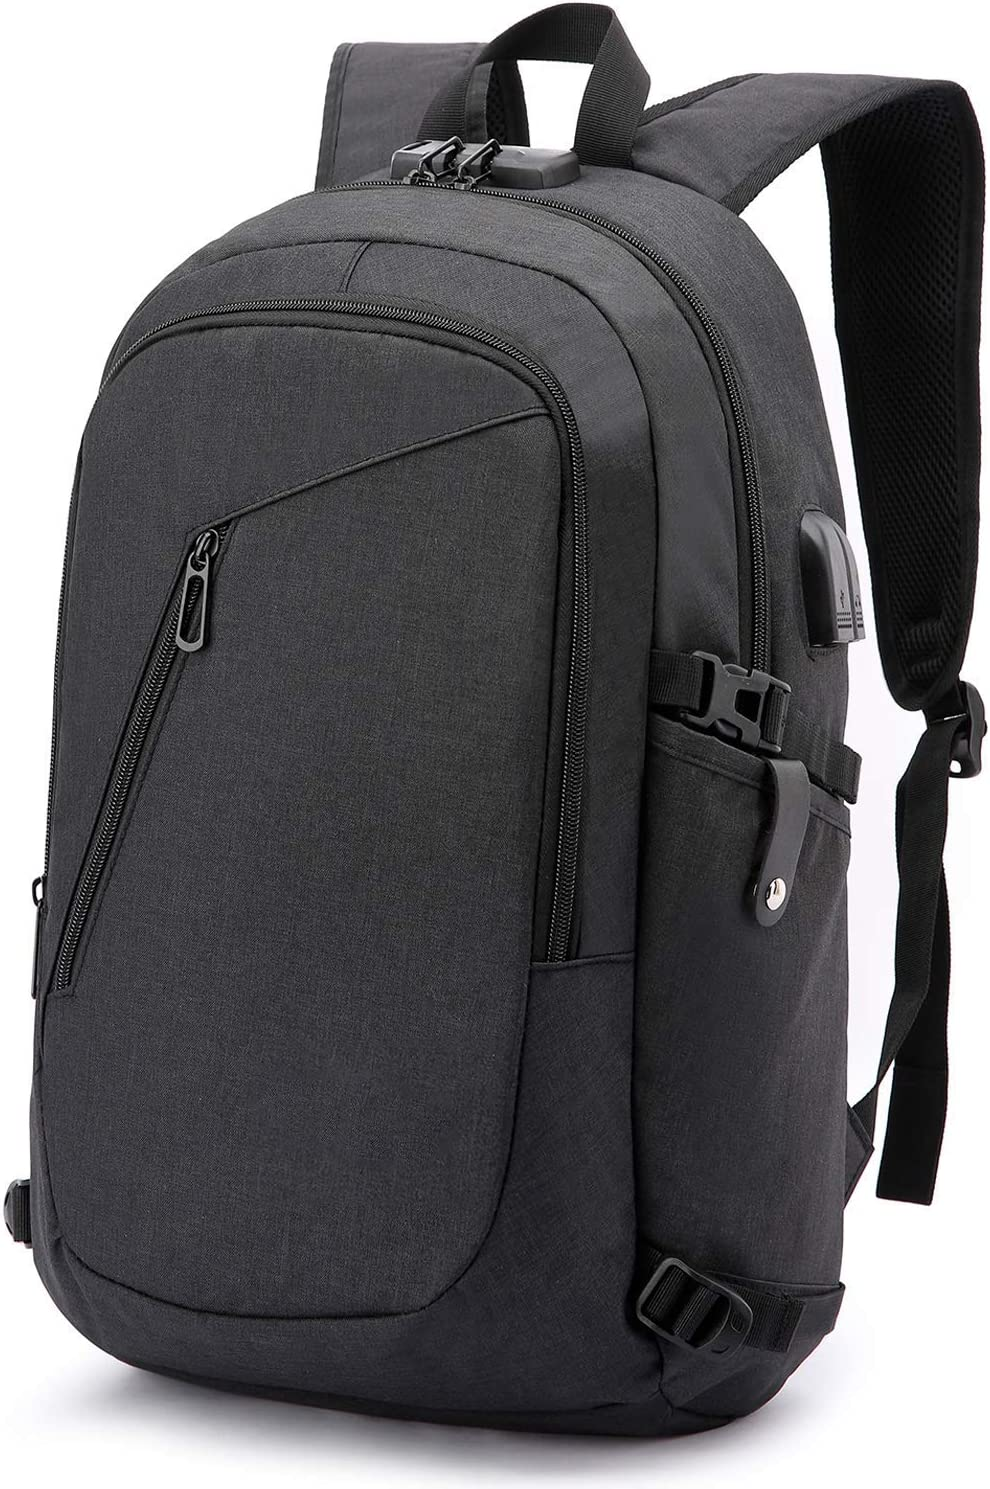 Anti-theft Business Laptop Backpack With USB Charge Port ,Lightweight Outdoor Waterproof Travel College Backpack Q-001